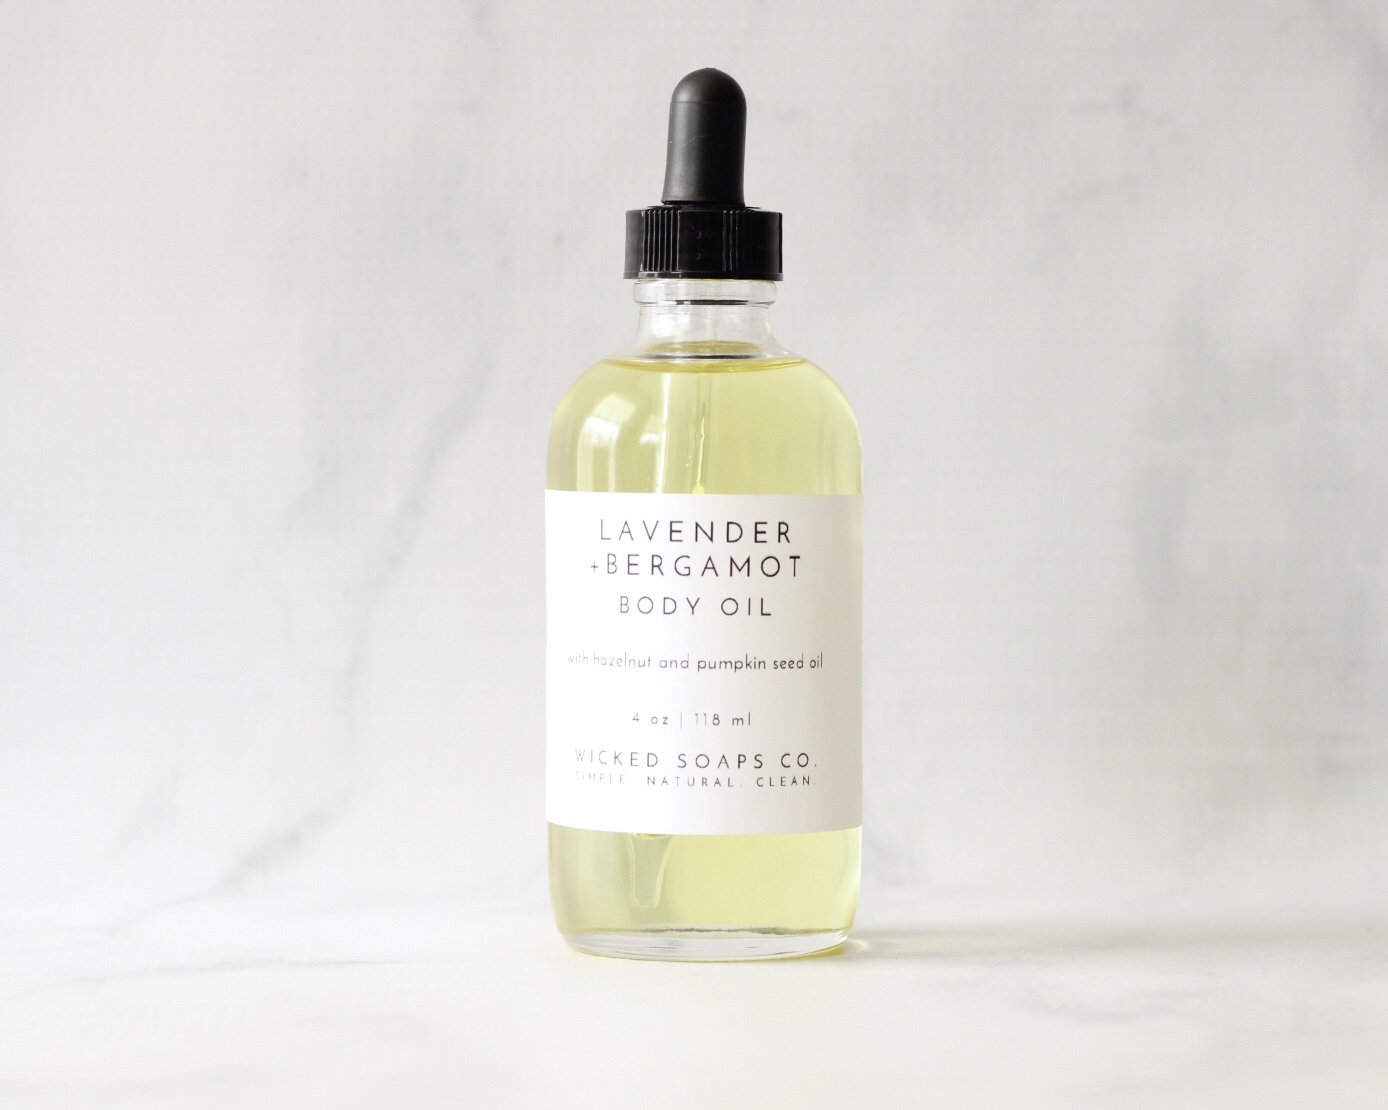 Lavender + Bergamot Body Oil